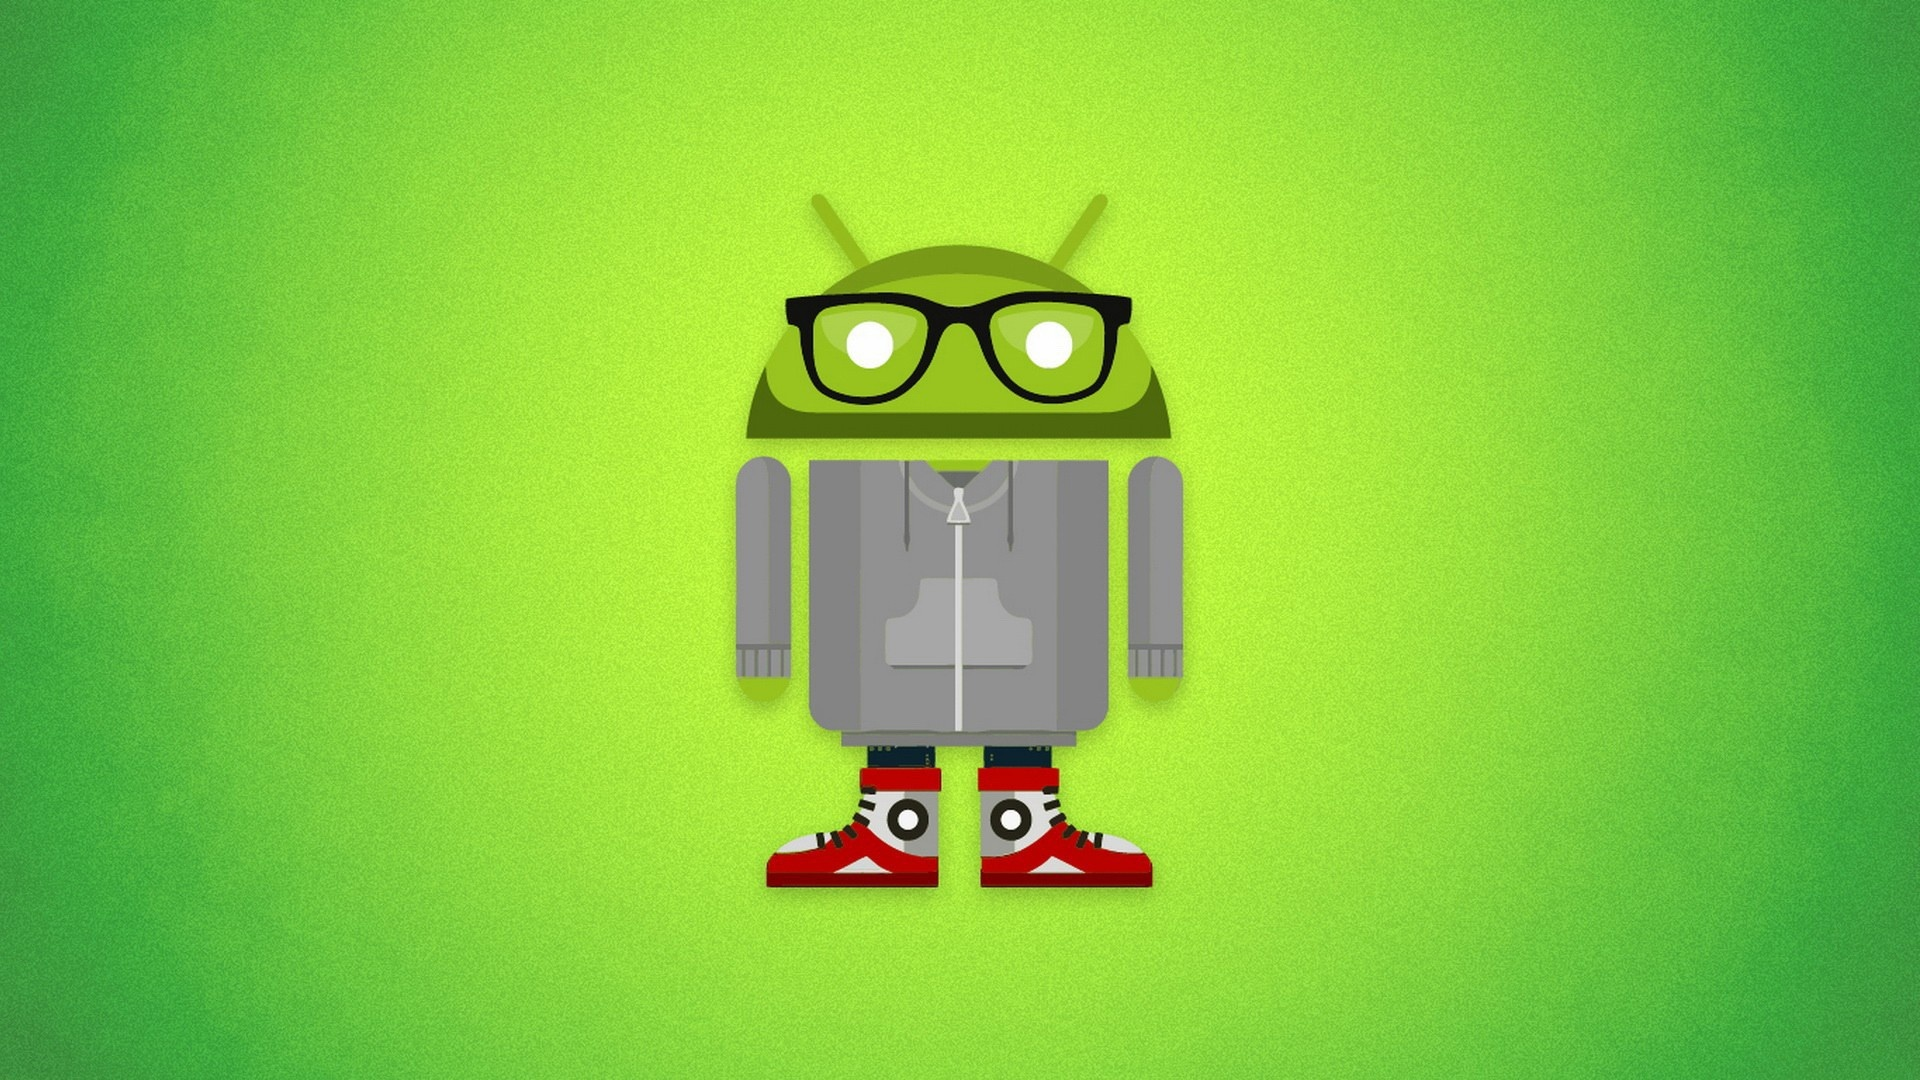 Free Download Cool Android Wallpaper Hd Wallpaper